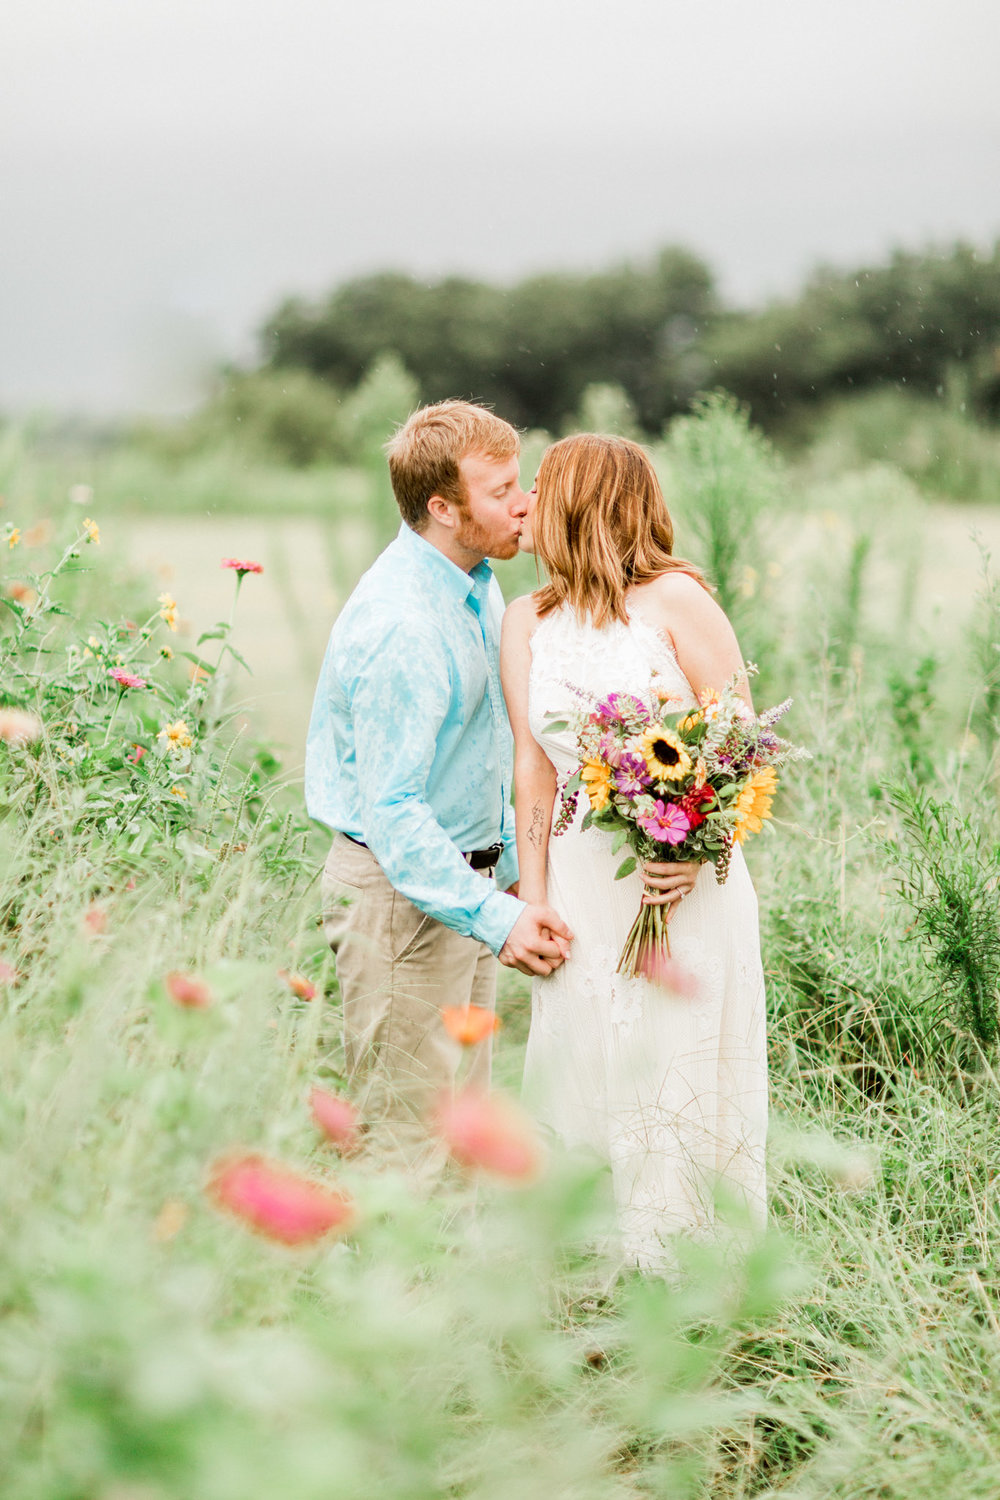 Burkburnett, TX Engagement Photos - Light and Airy Photography